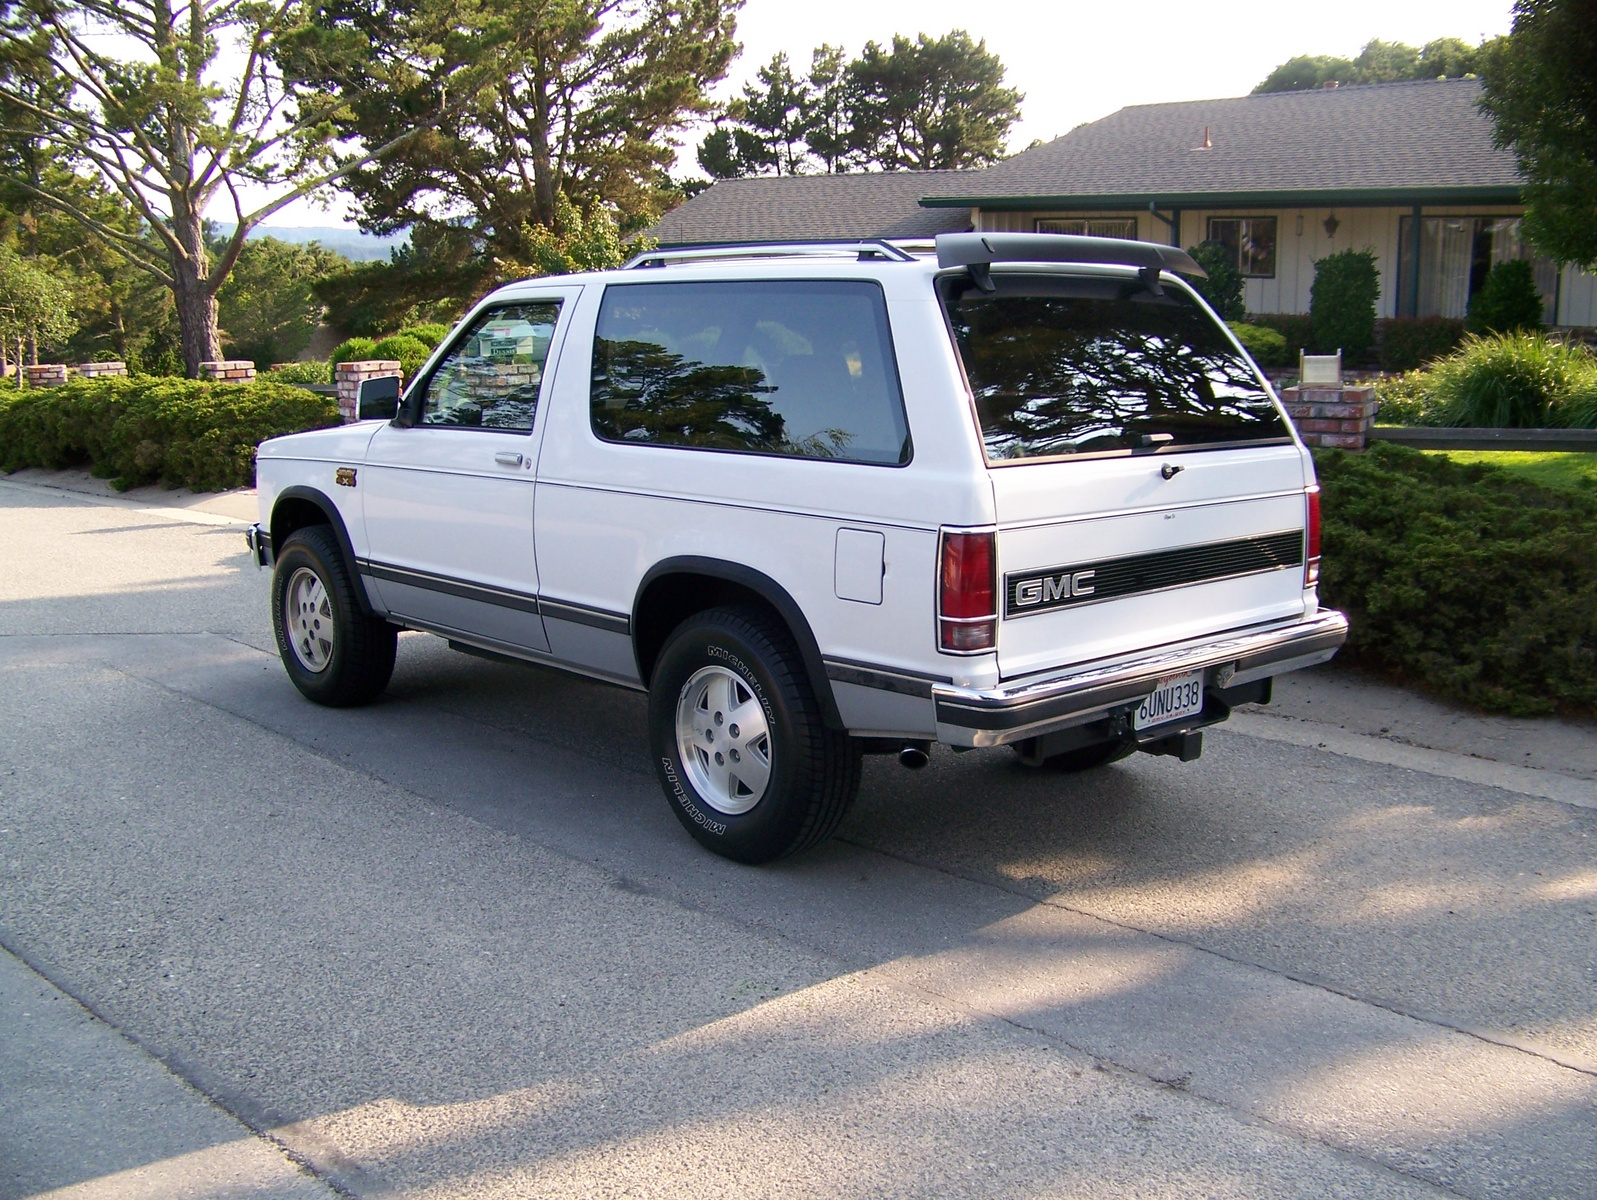 Chevrolet S 10 Extended Cab 1997 together with 2013 Gmc Sierra Lift Kits as well Watch together with Pictures Of 3 Lift On 2013 Chevy Truck likewise Chevy 4x4 Wheels. on 2000 chevy s10 4wd